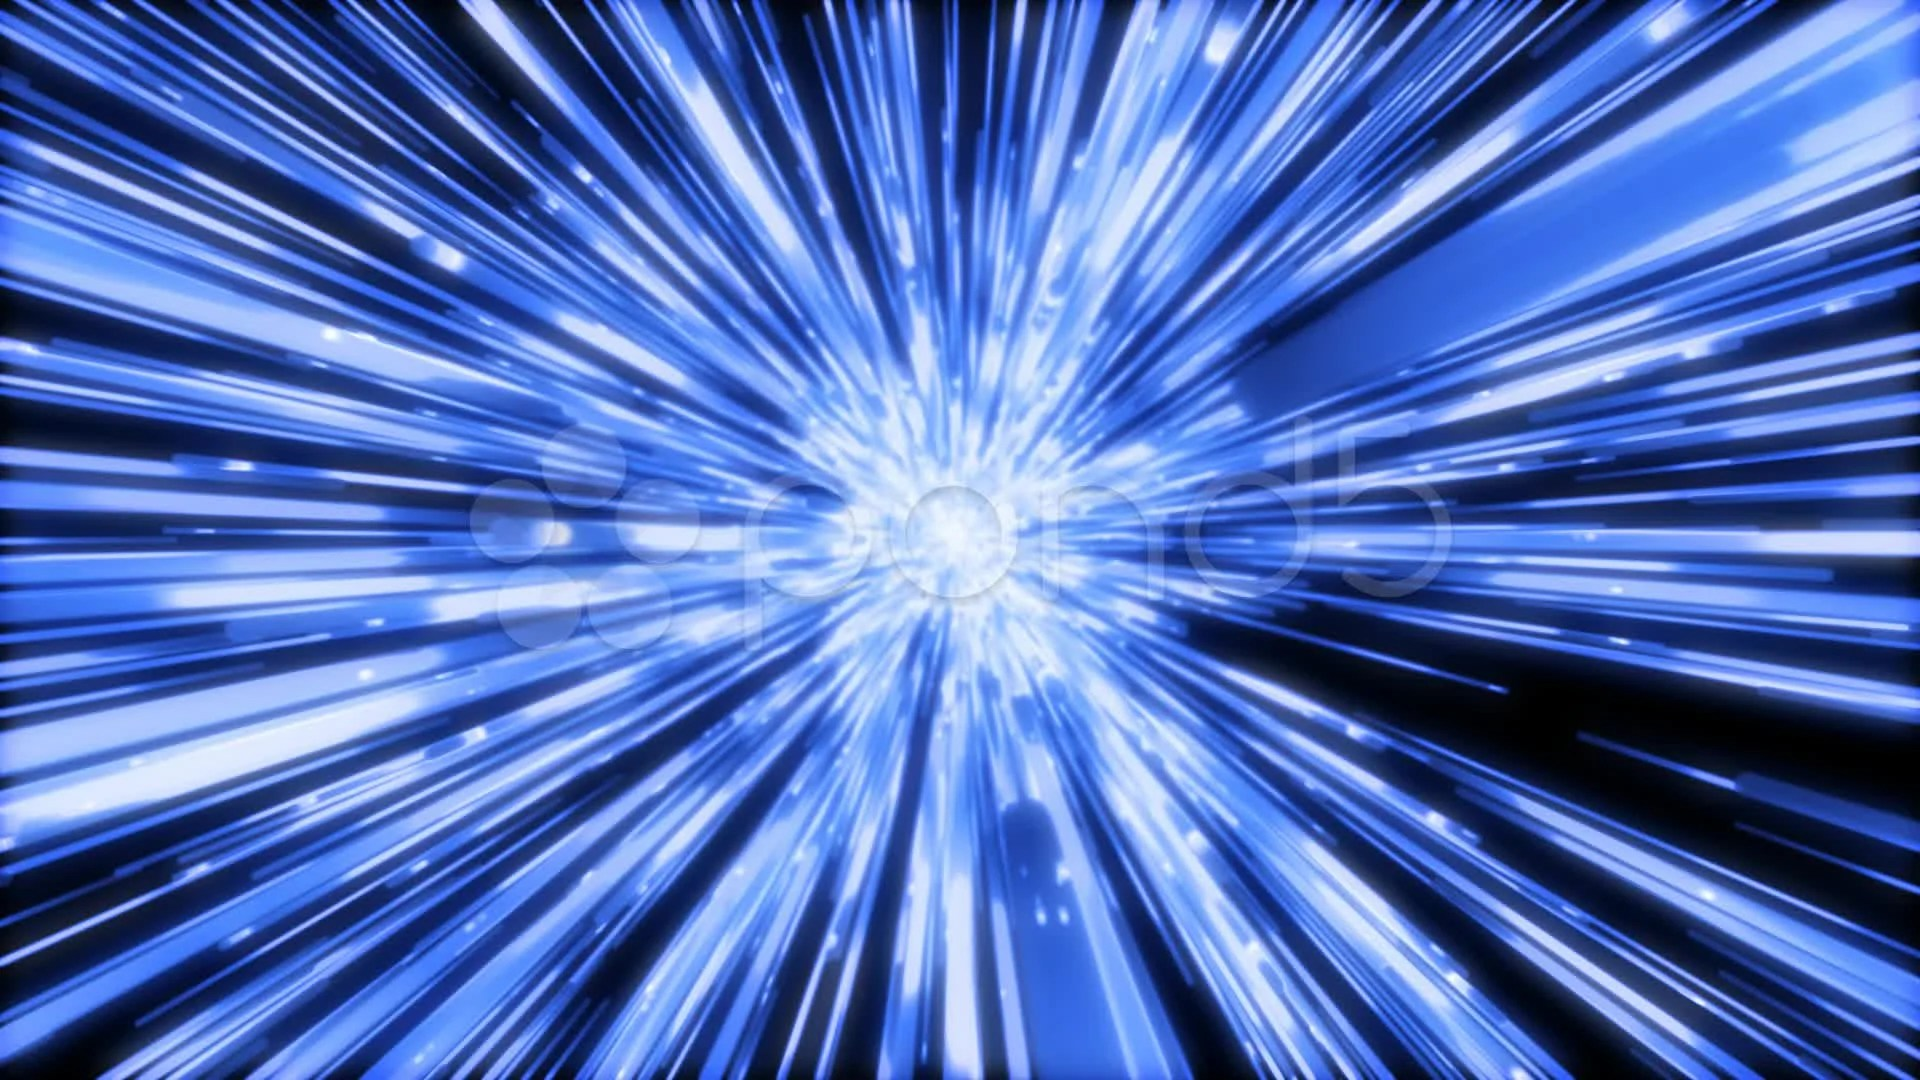 3d Live Moving Wallpaper Space Tunnel Abstract Hd Amp 4k Stock Footage 10835433